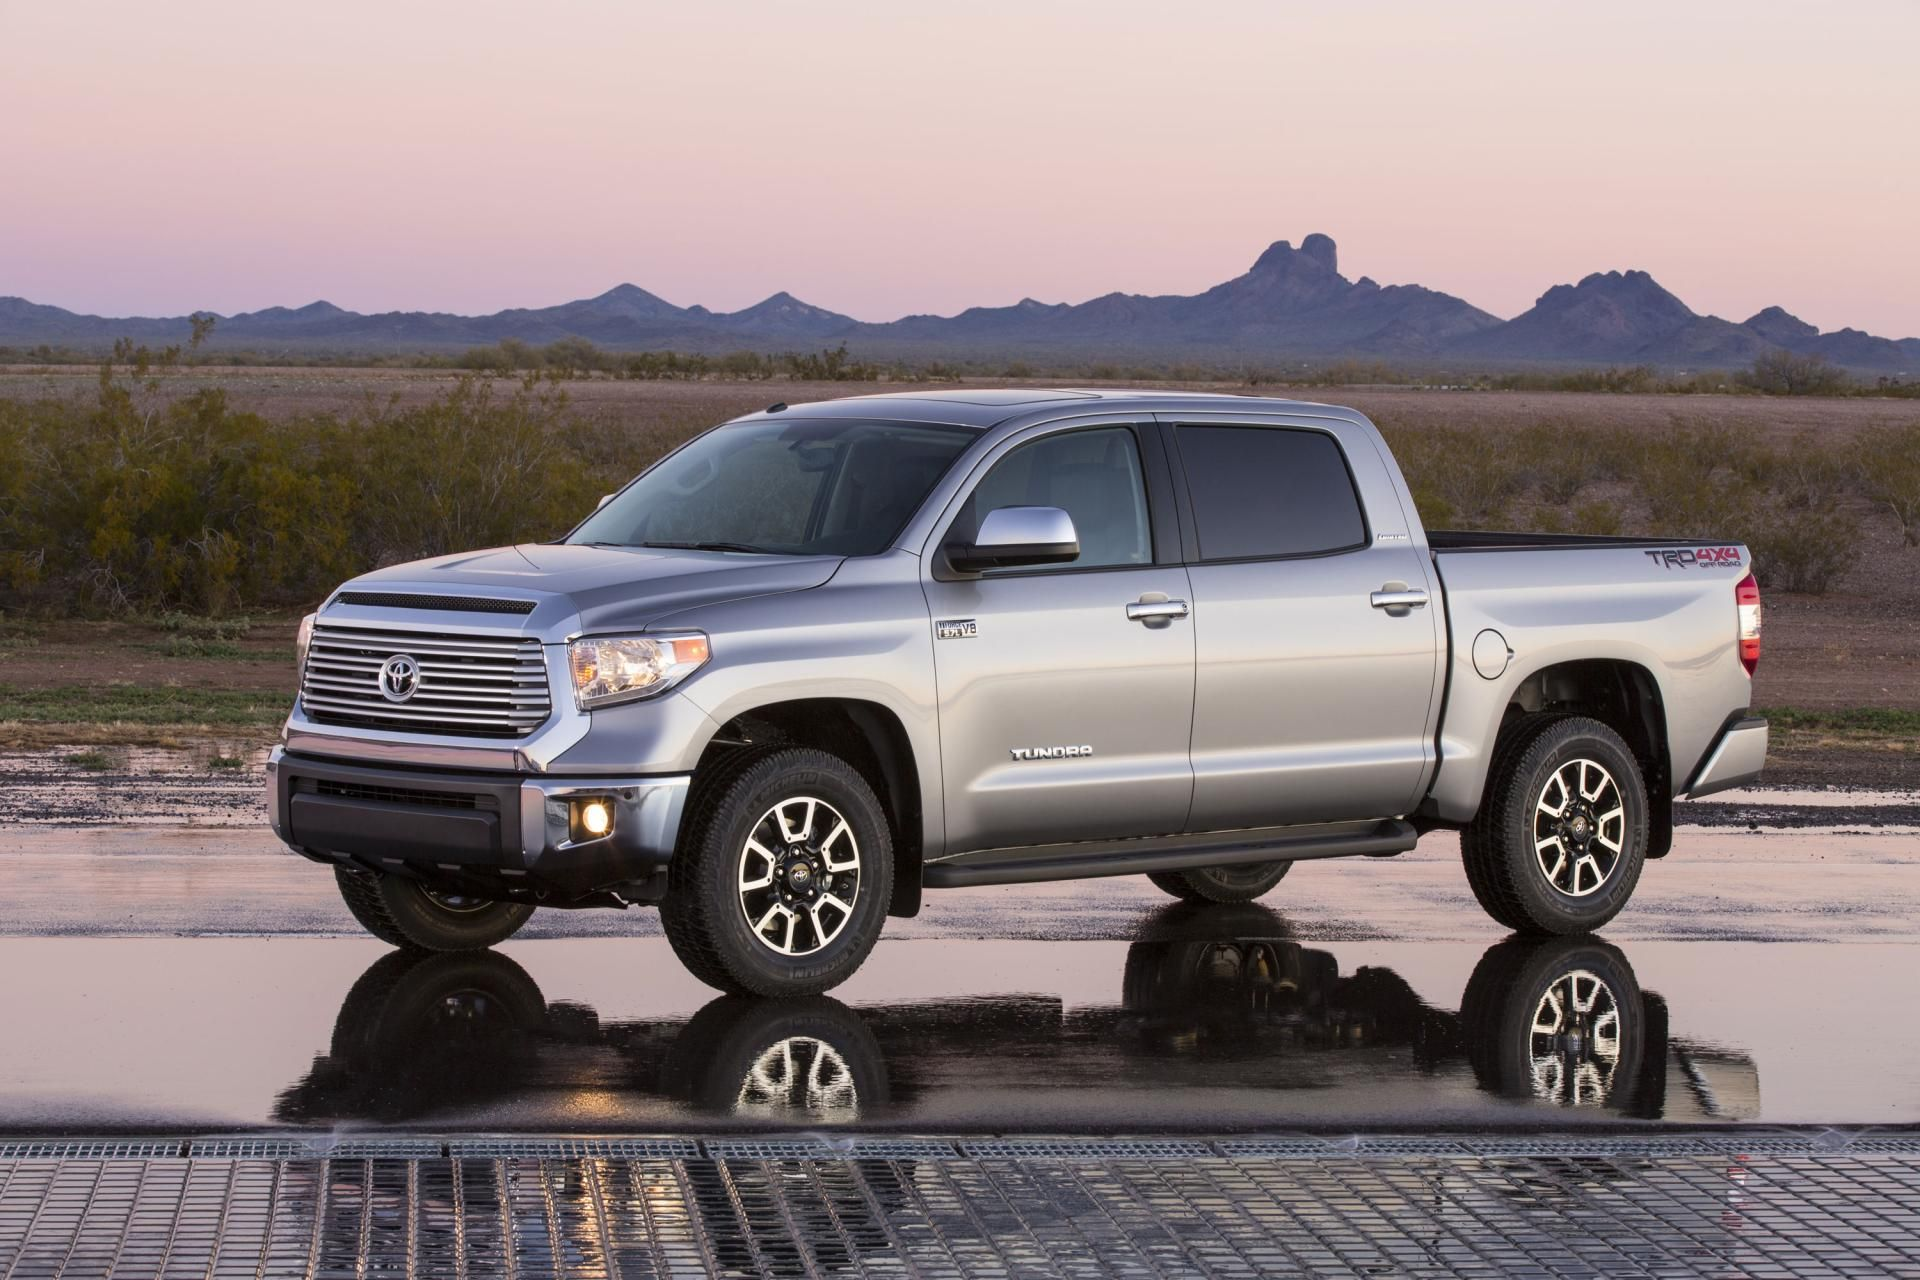 2016 toyota tundra http upcomingcars2016 com 2016 toyota tundra price release date cars pinterest toyota tundra price 2016 toyota tundra and